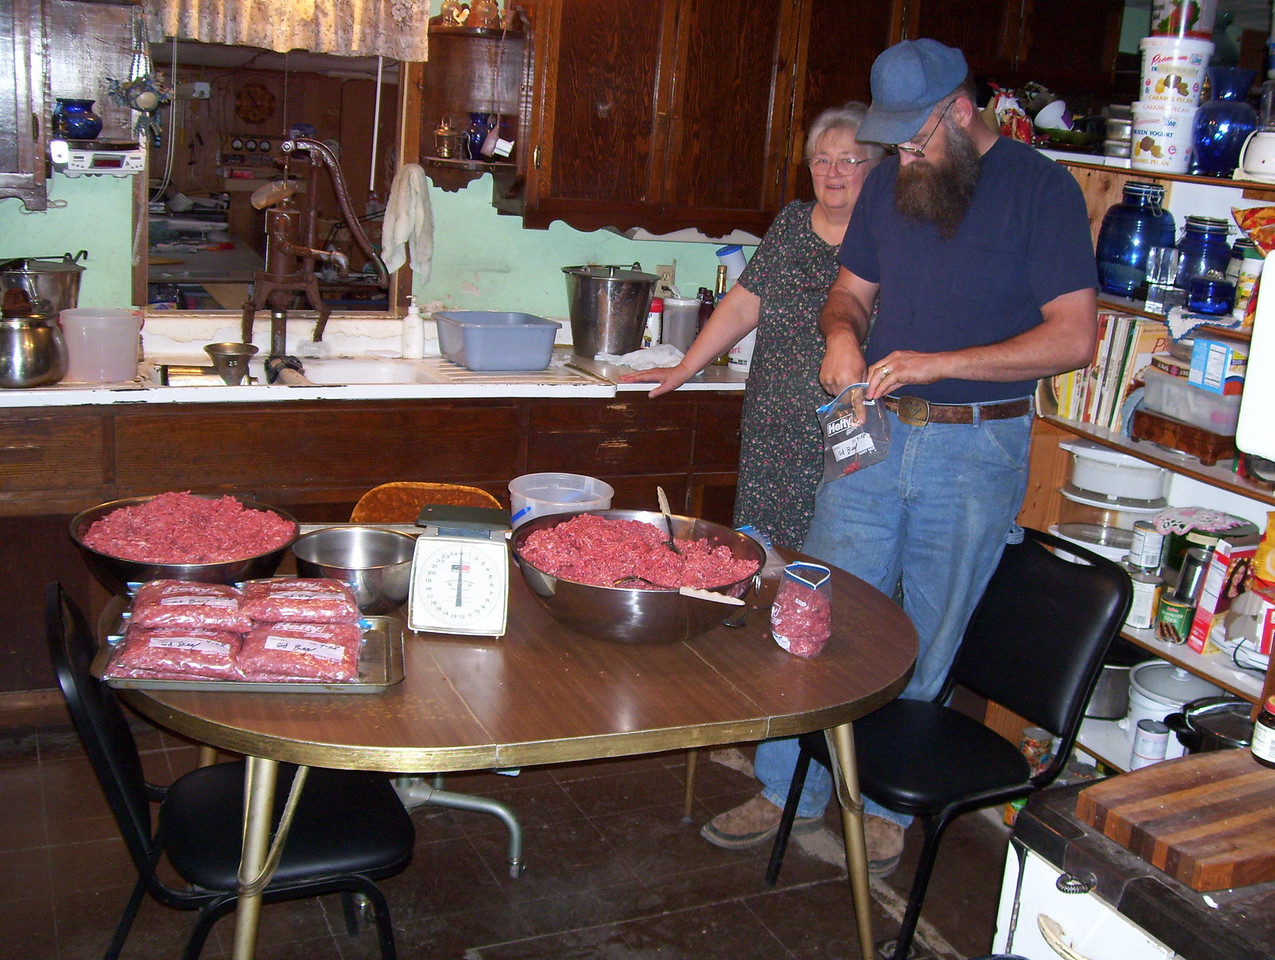 20-- Bagging up  Delicious.<br /> After the meat cools down, the next morning we can grind it up and end up with 3 big pans to weigh out into freezer bags to go into the freezer until it is used. We keep Kathy busy marking the dates on the bags and putting it away and also the cleanup.